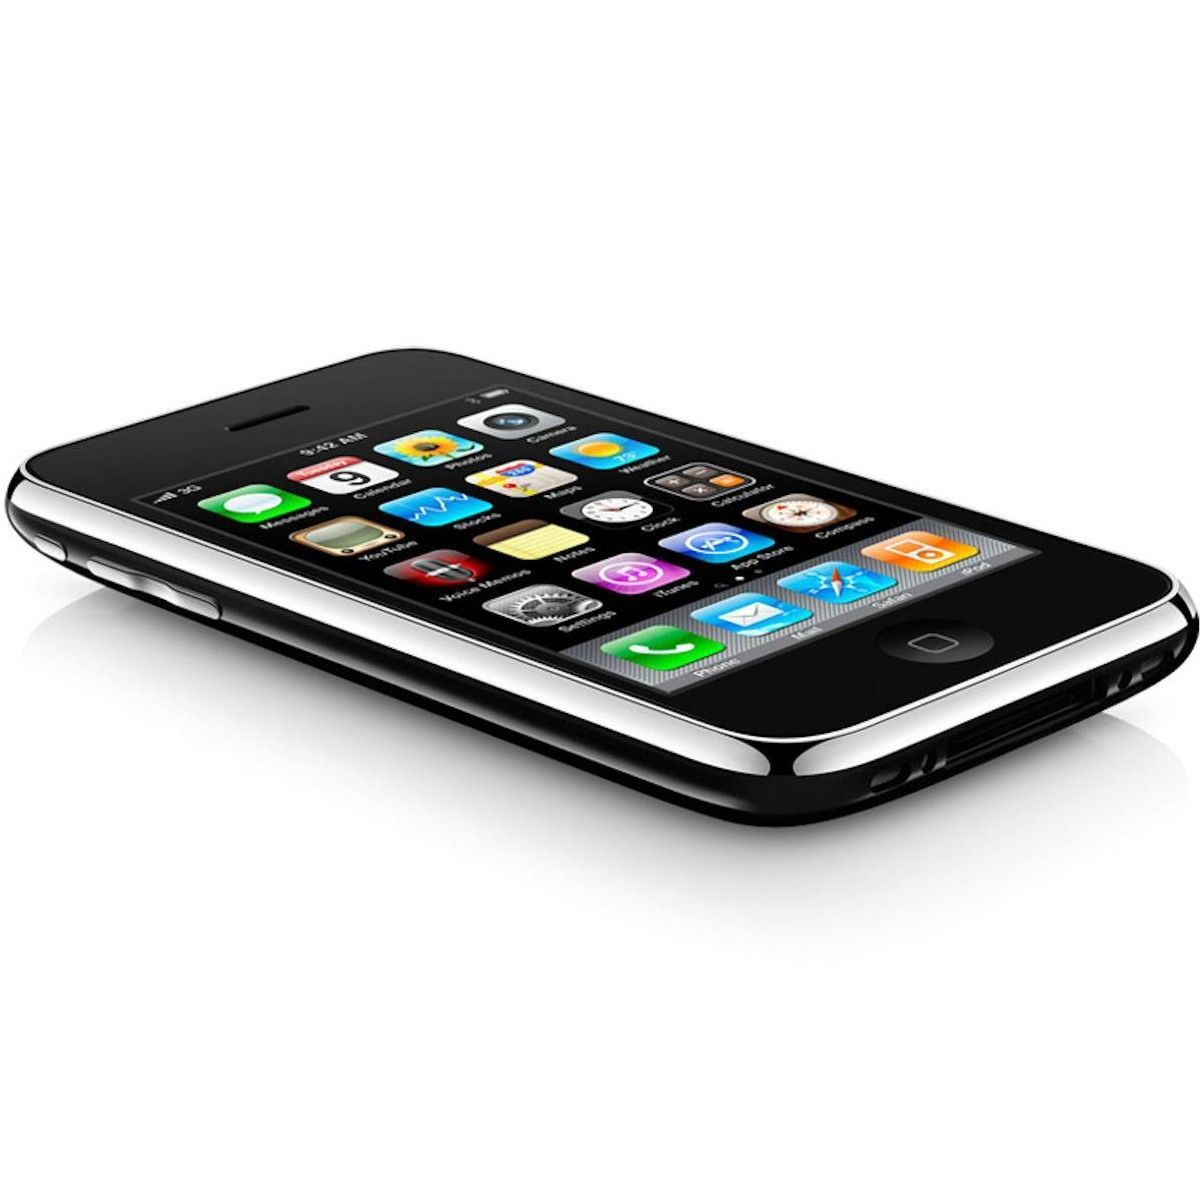 Iphone 3 Precio Libre Apple Iphone 3gs Caracteristicas Precio Reviews Y